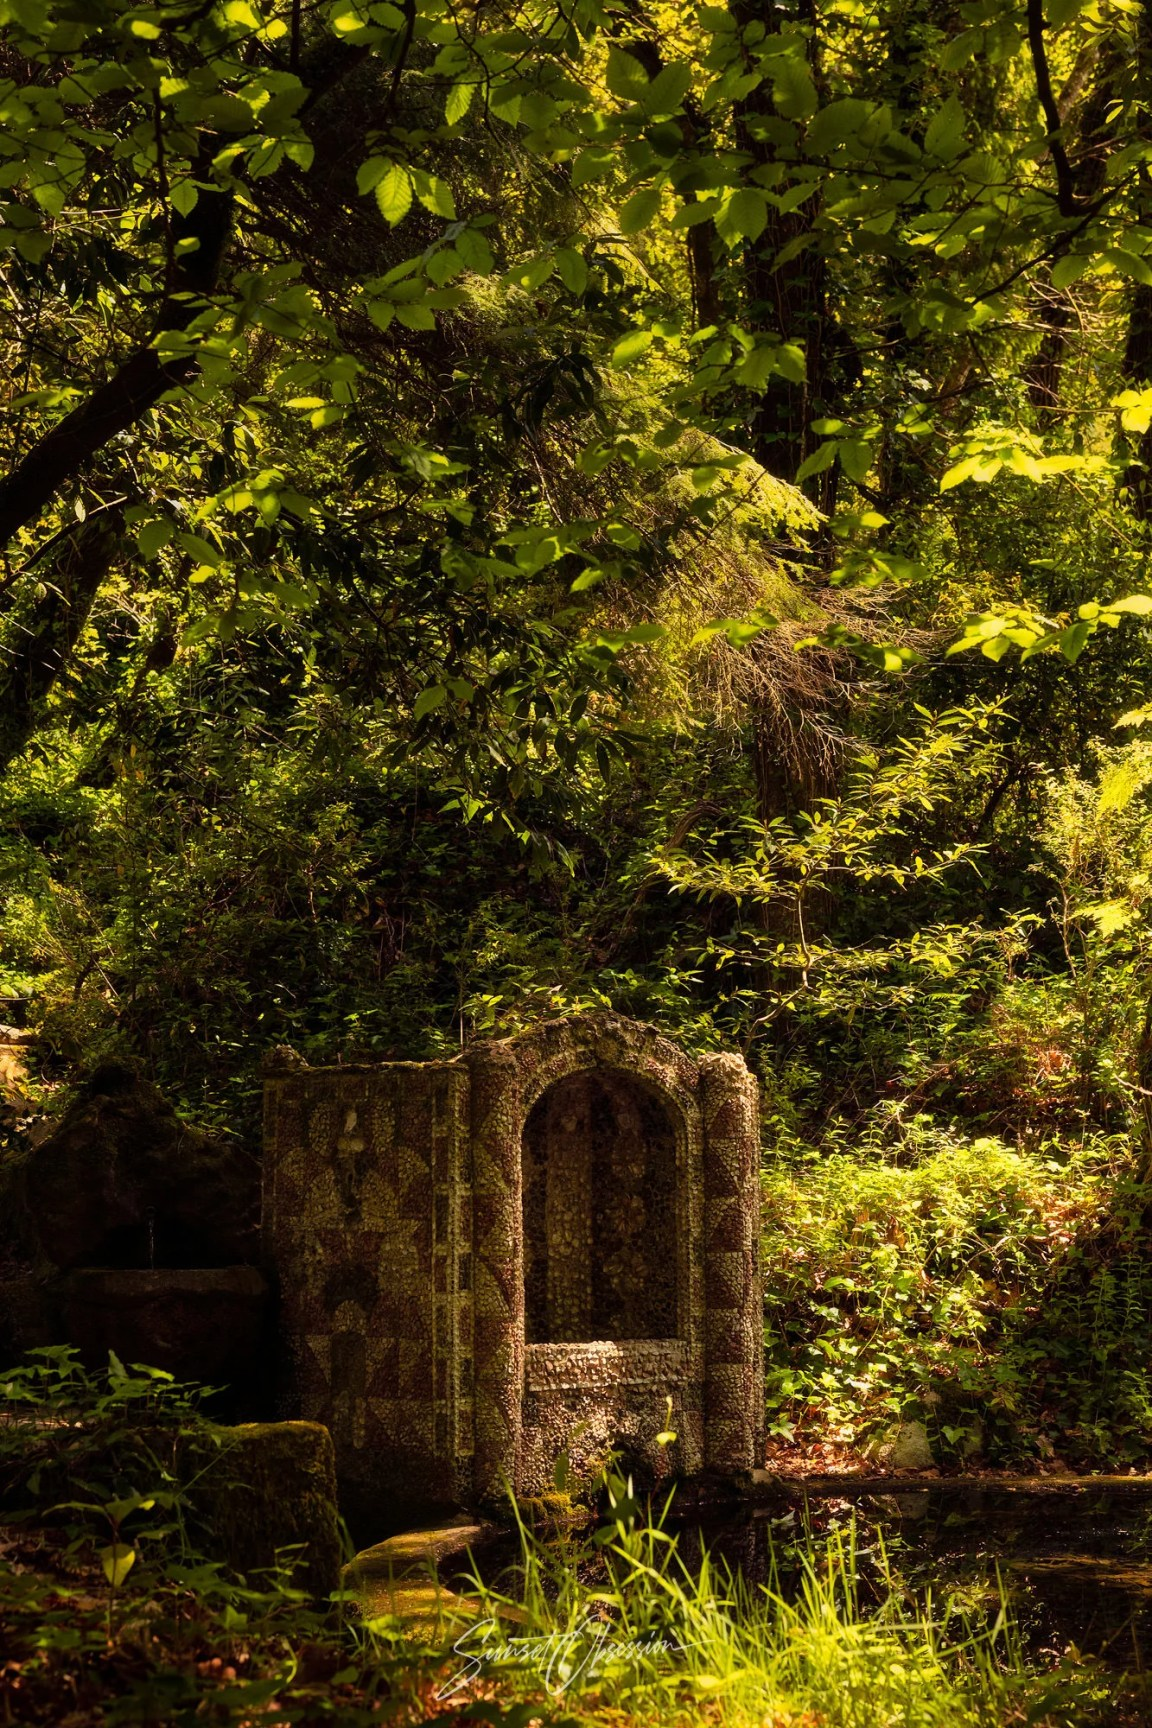 Pena gardens is a great spot for photography in Sintra